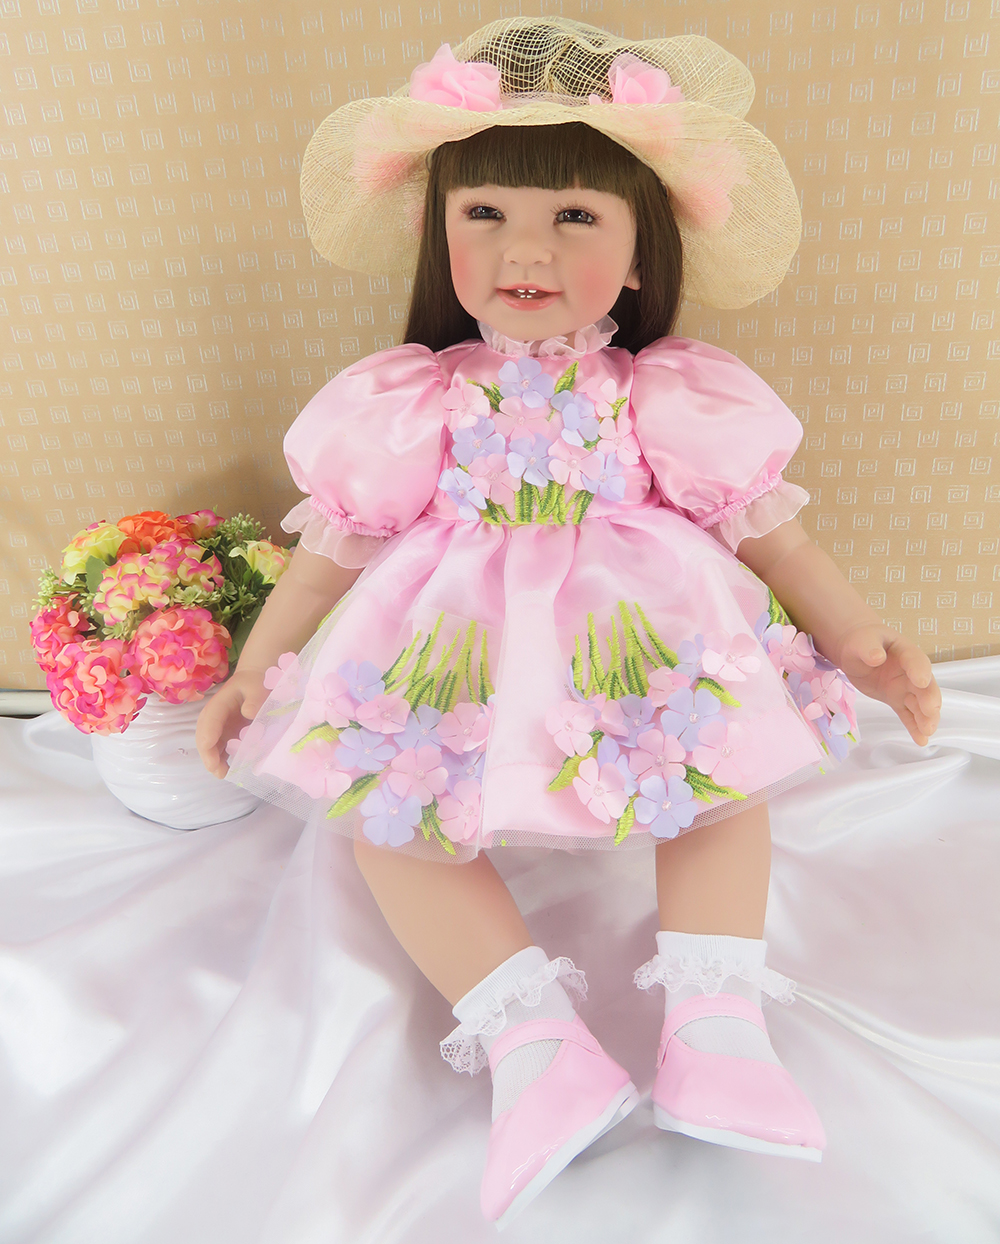 Pursue 24/60 cm New Vinyl Silicone Reborn Princess Toddler Girl Doll Toys for Girls Birthday Holiday Gift Limited Edition Doll pursue 22 55cm realistic reborn babies girl doll silicone vinyl lifelike princess toddler doll toys for children girls birthday